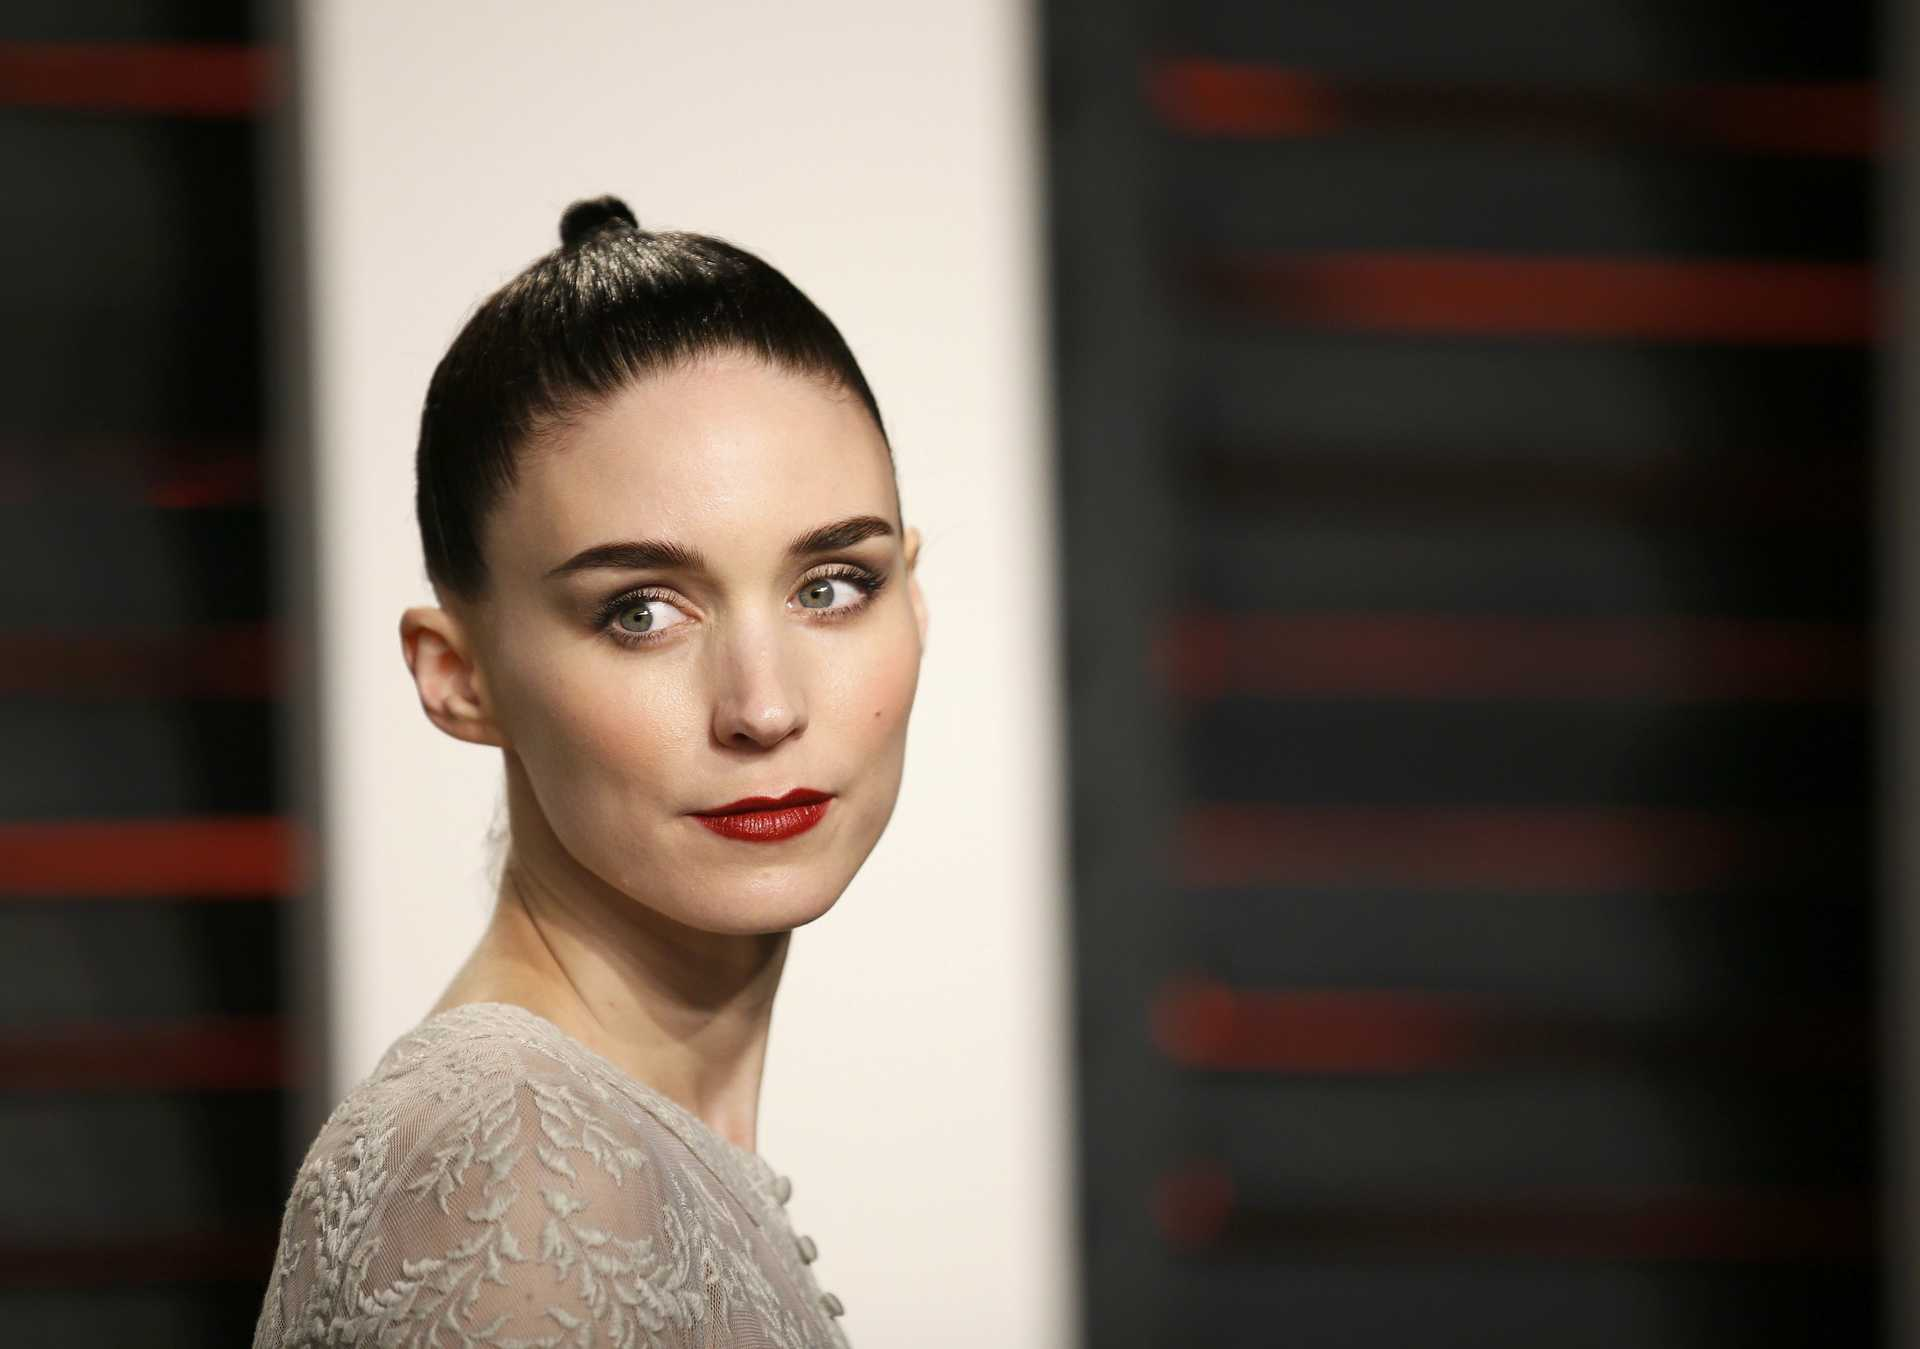 Actress Rooney Mara arrives at the Vanity Fair Oscar Party in Beverly Hills